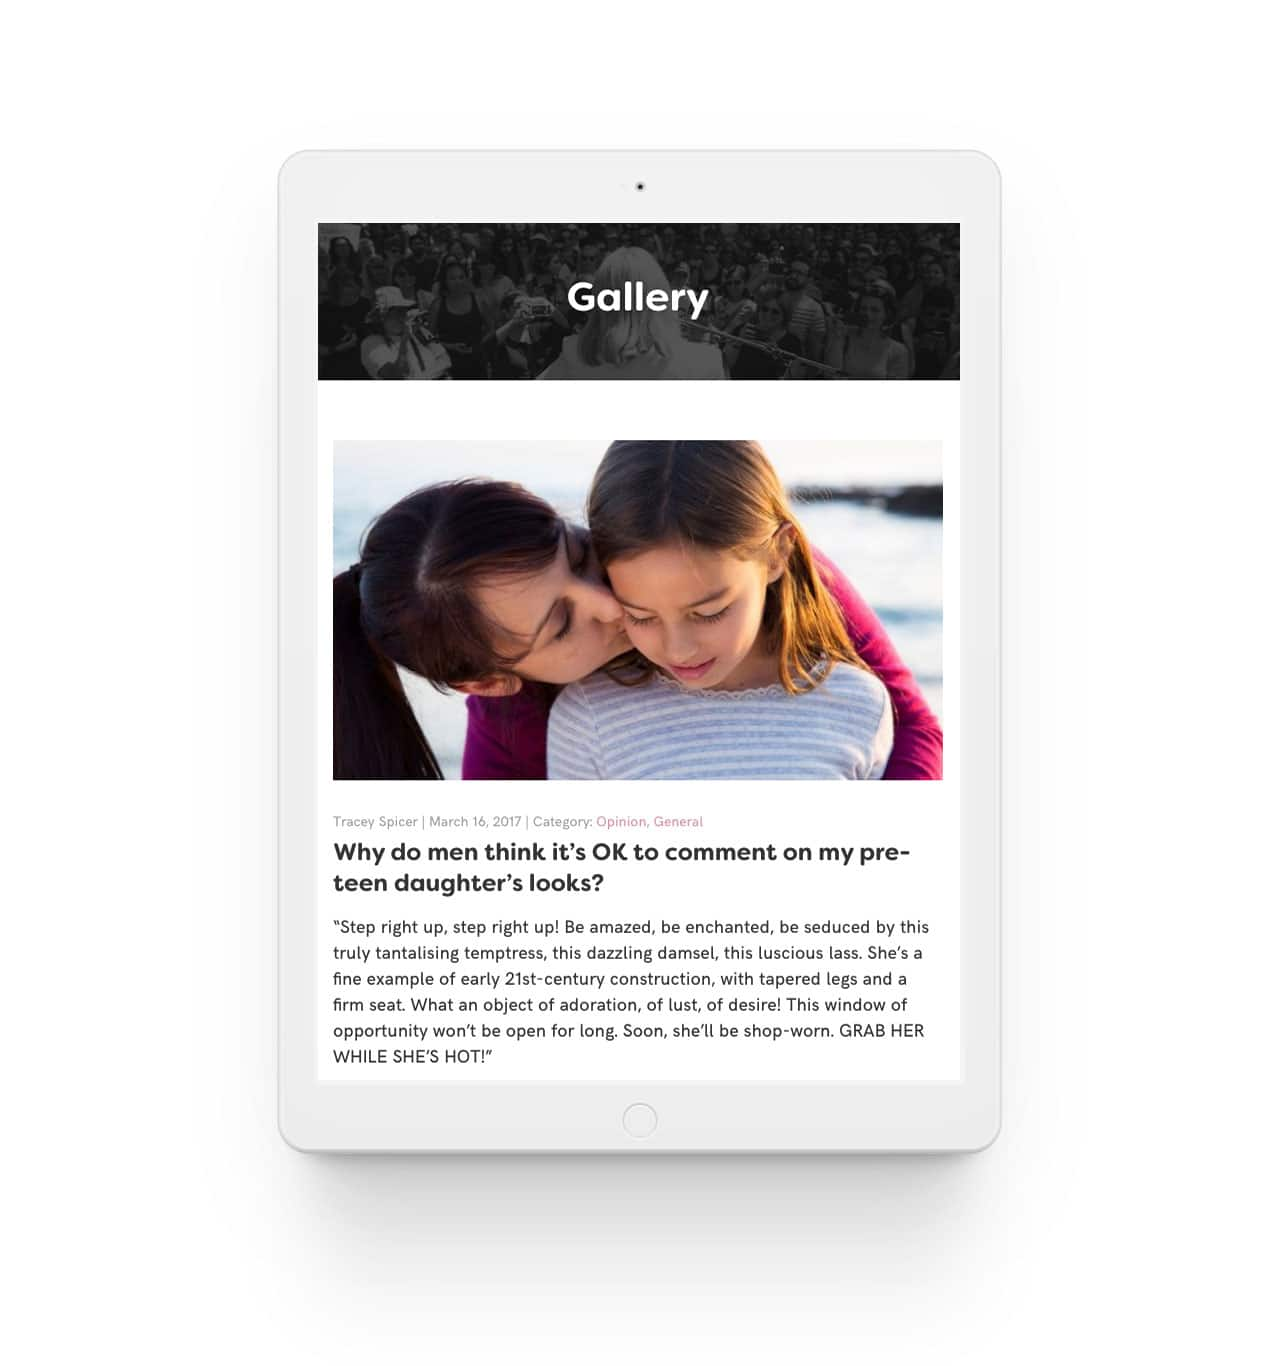 Tracey Spicer responsive website for blog post on iPad in portrait view